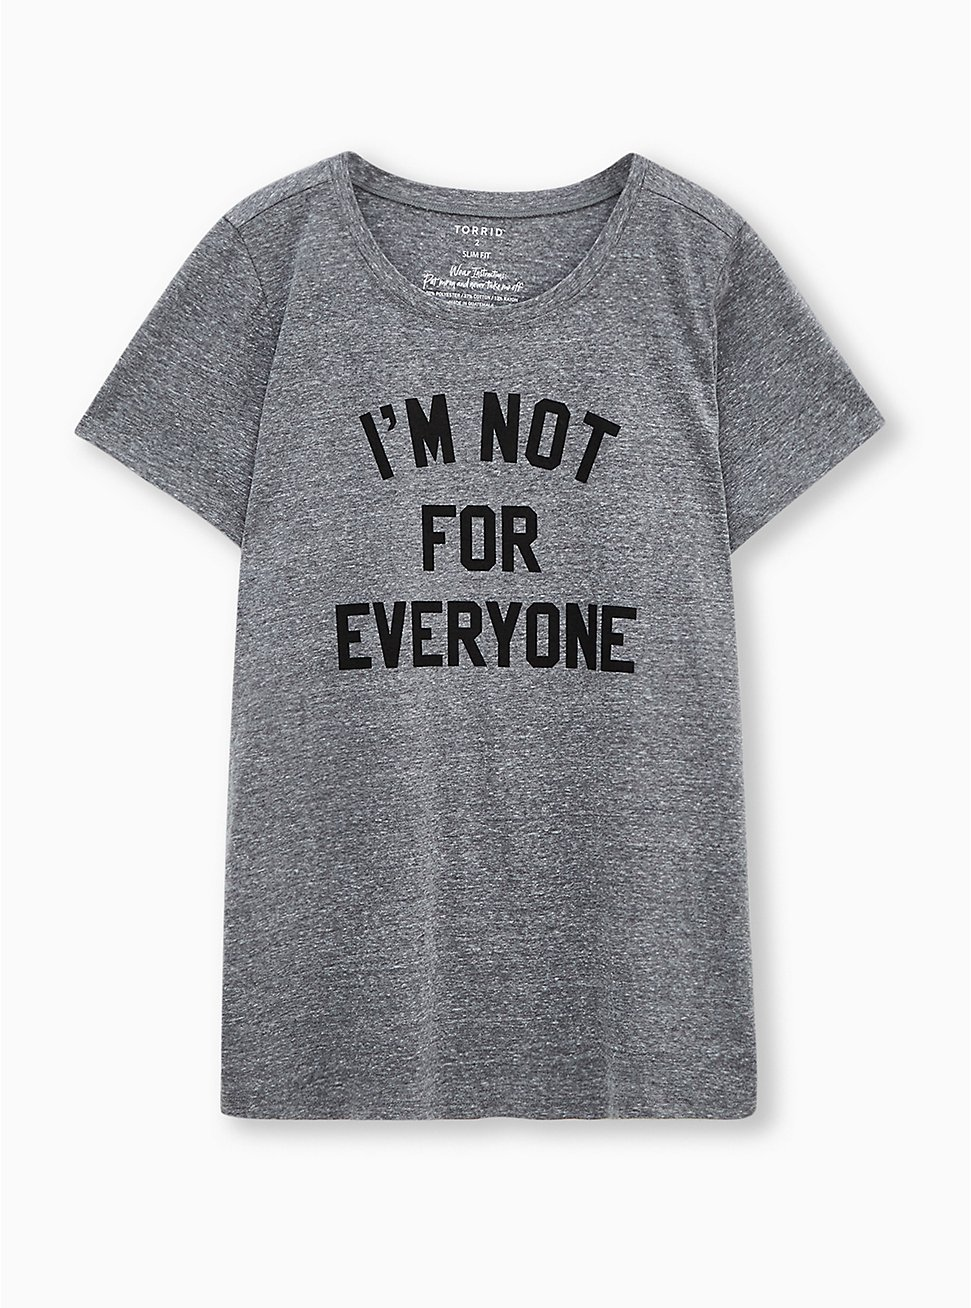 Slim Fit Crew Tee - Triblend Jersey Not For Everyone Grey, MEDIUM HEATHER GREY, hi-res